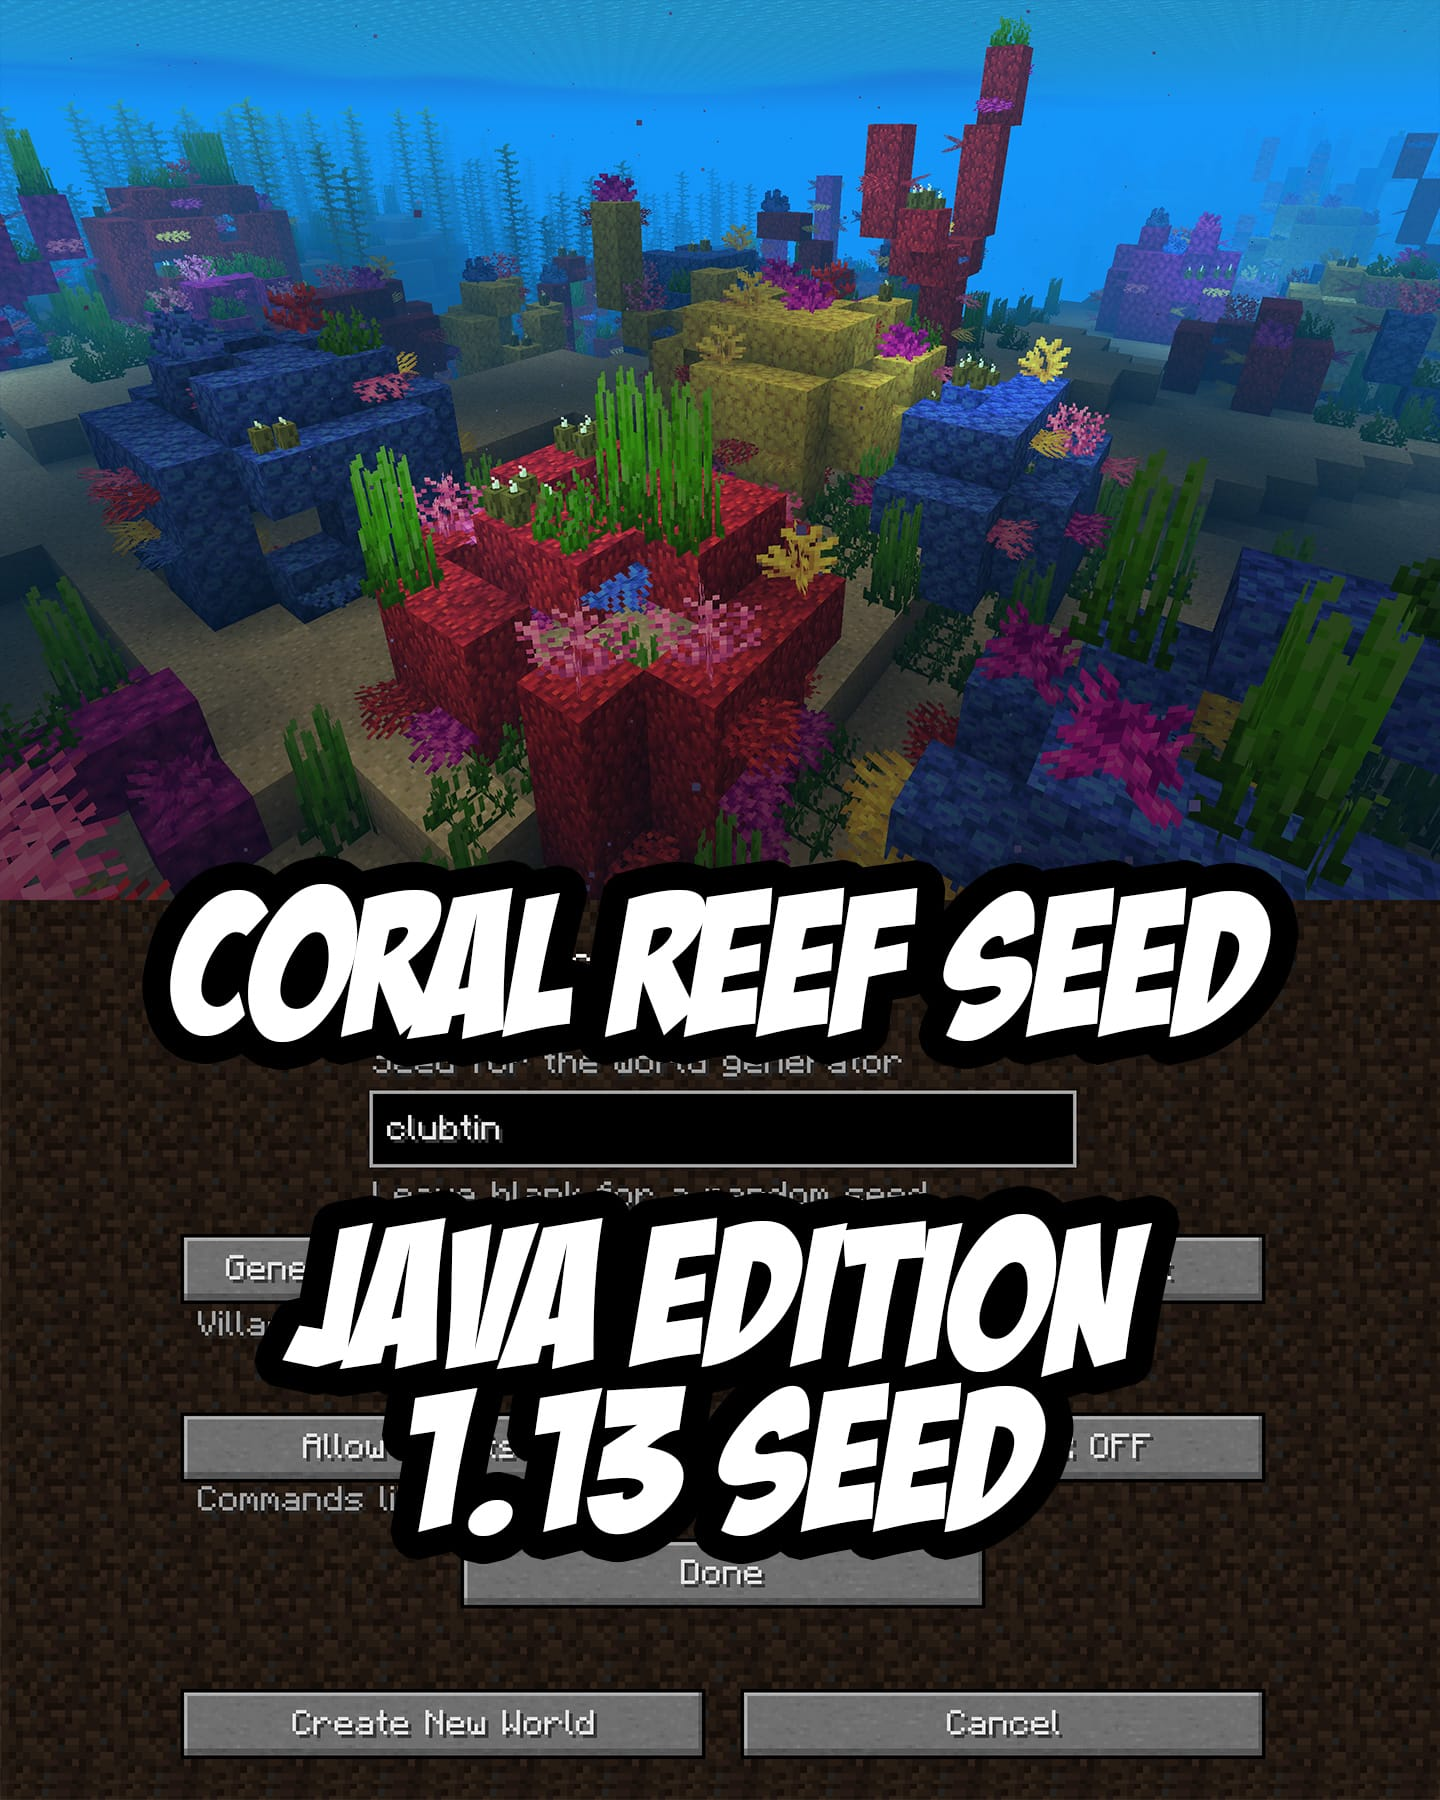 download minecraft java edition 1.13 today